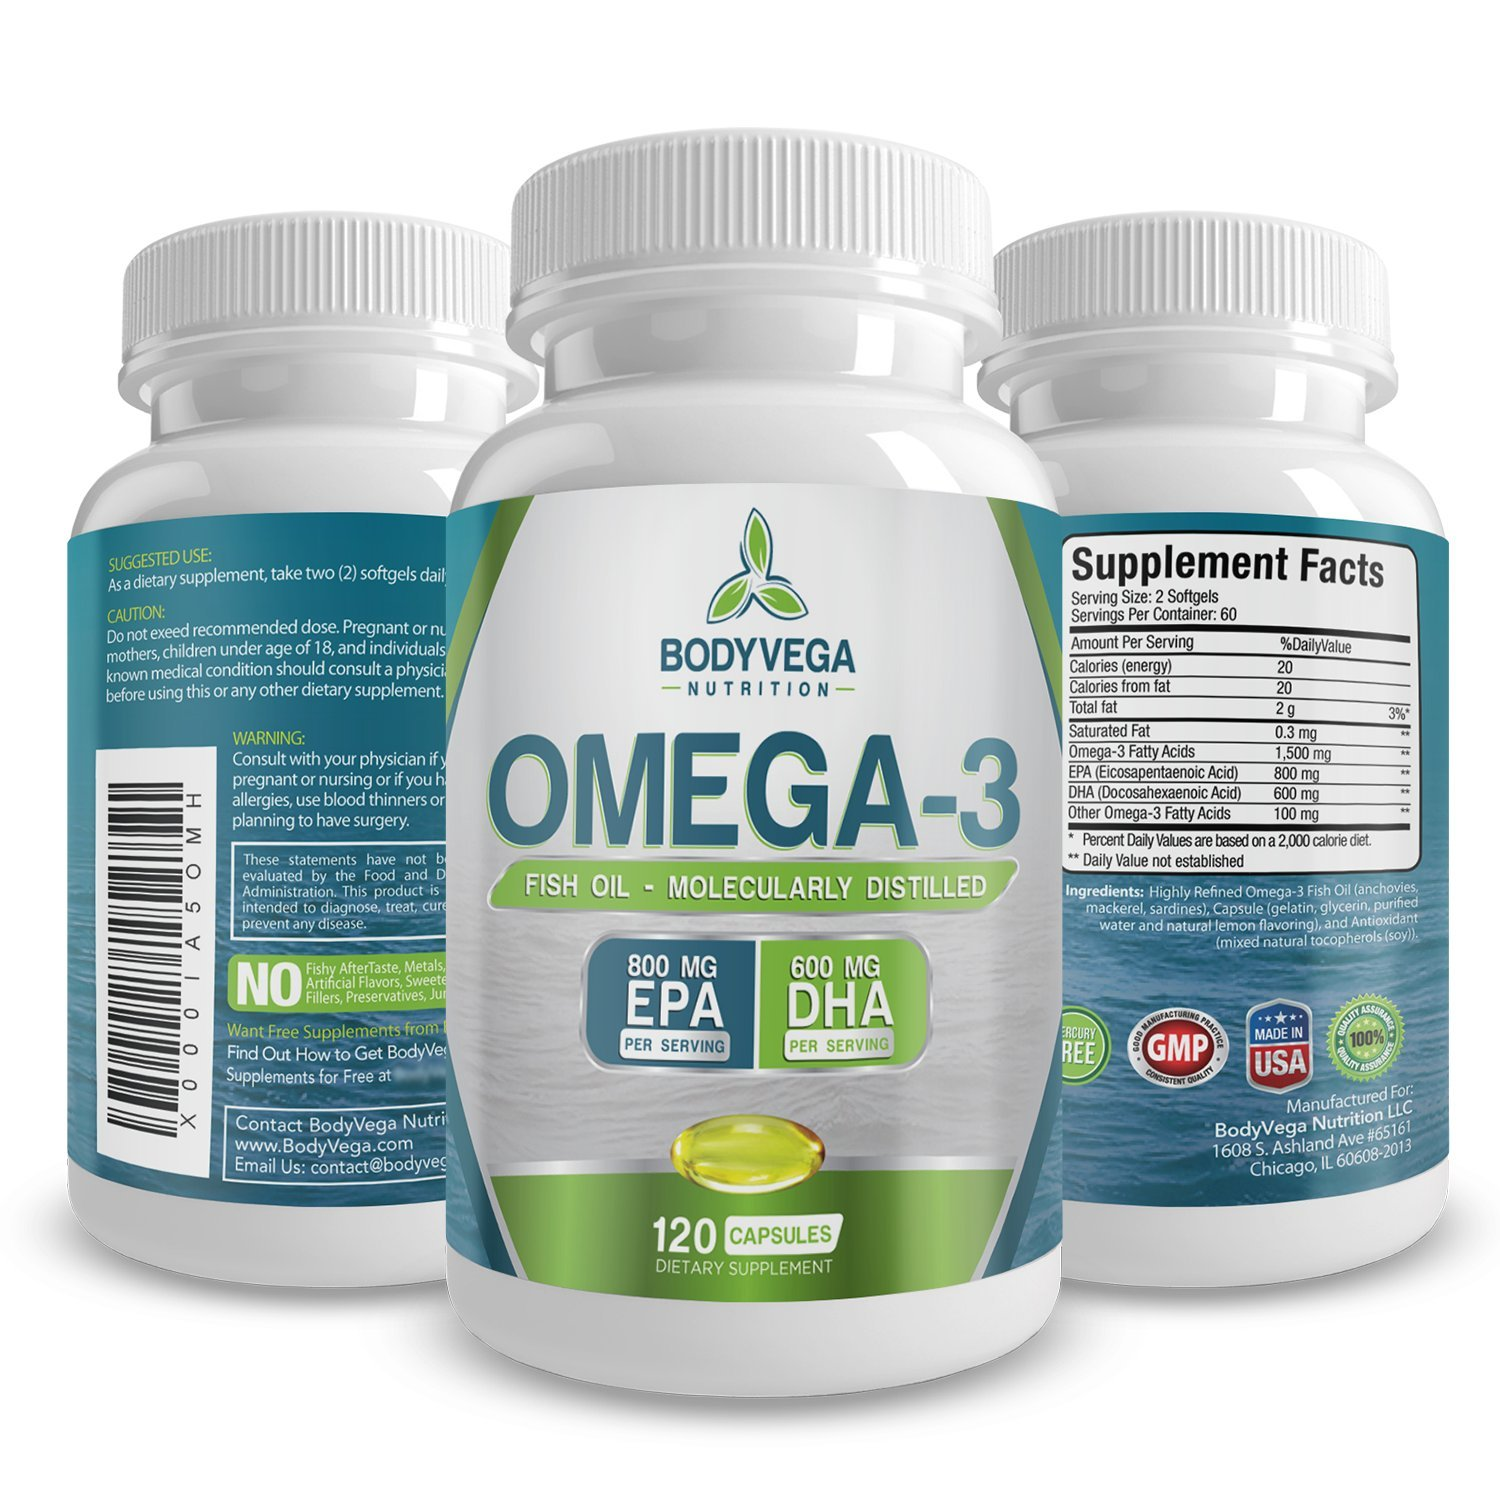 Top 20 best omega 7 fish oil supplements list and for Best fish oil capsules